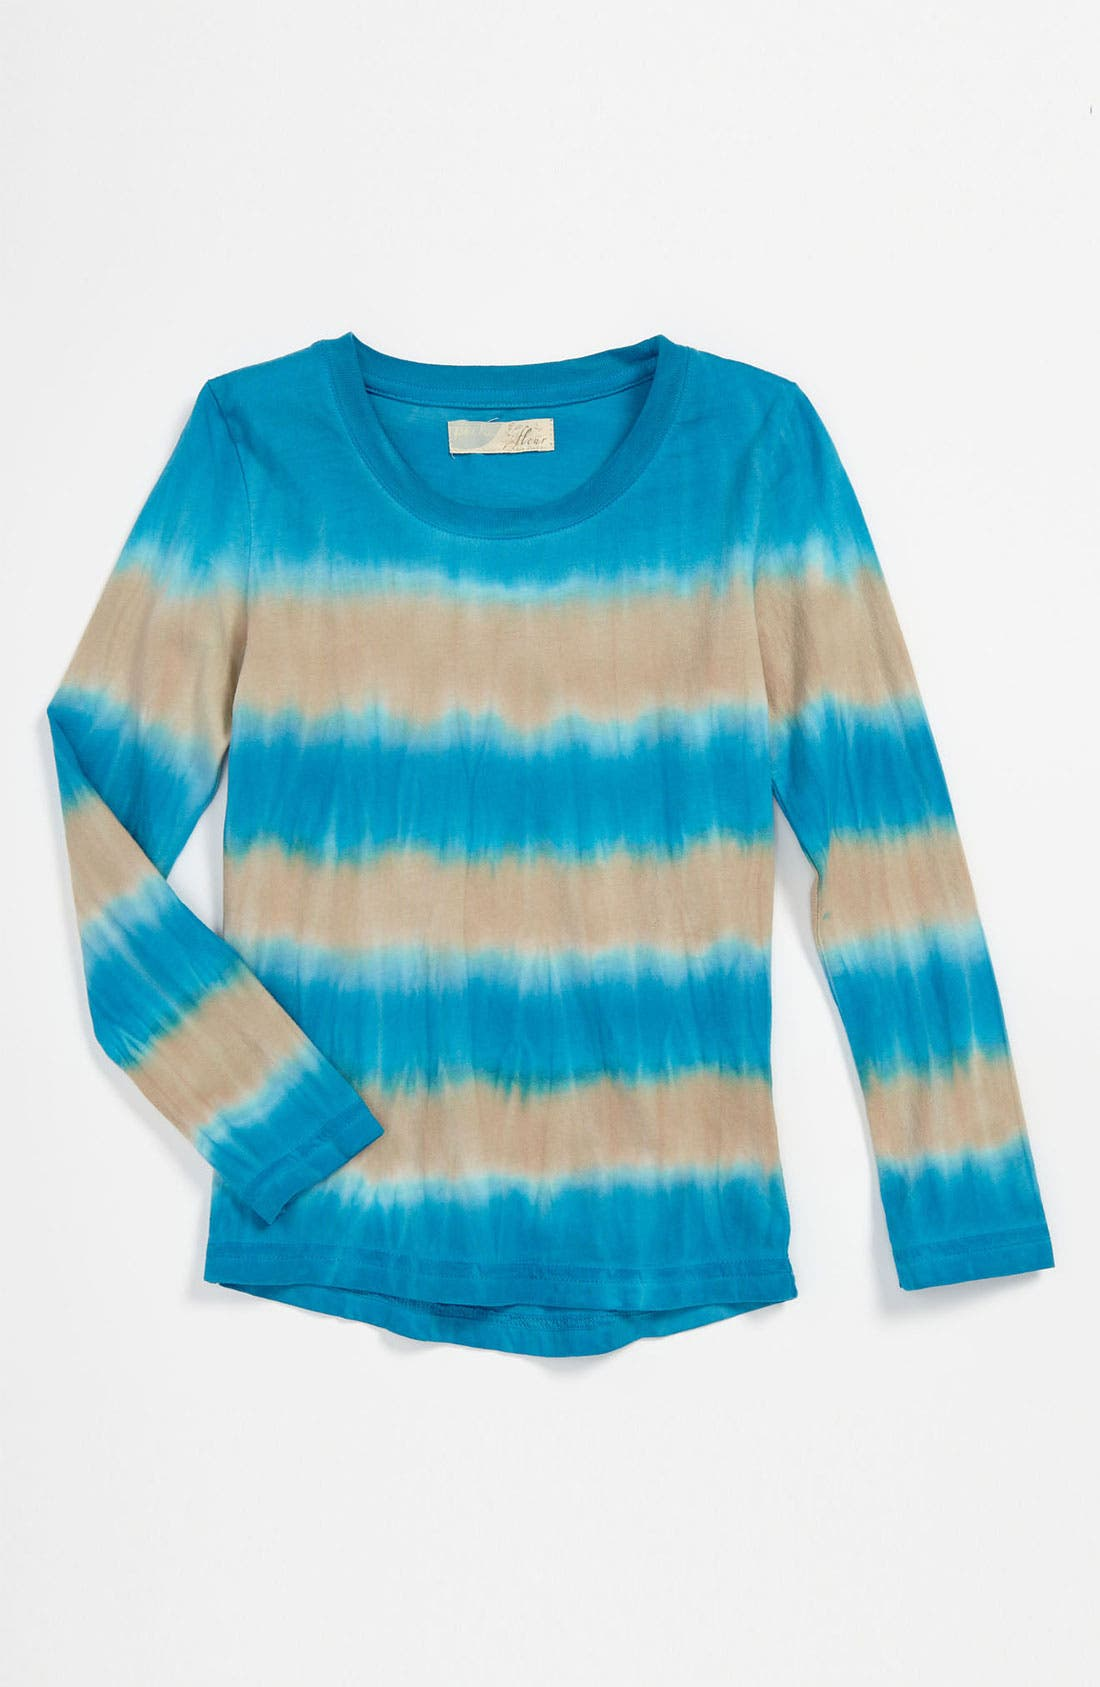 Alternate Image 1 Selected - Peek Ombré Stripe Tee (Toddler, Little Girls & Big Girls)